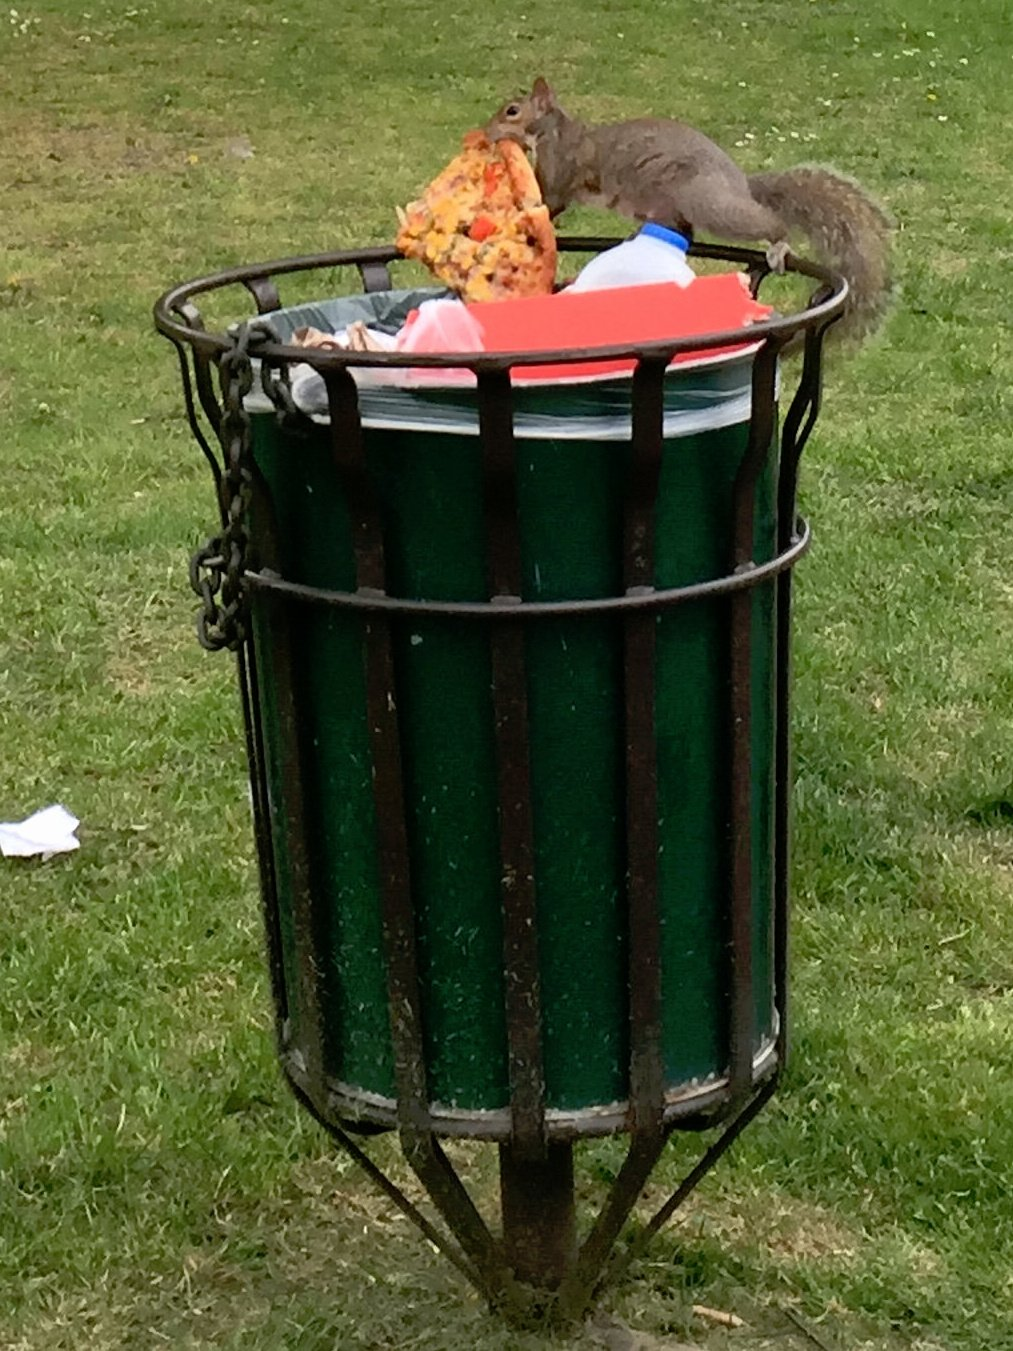 """A sales manager from south London managed to snap these pictures of a hungry squirrel tucking into a meaty pizza - nearly TWICE its size. See NATIONAL story NNBUSHY; The 24-year-old was taking a walk through Mortlake Green in west London on Sunday when she spotted the furry diner helping himself to the cheesy snack.  She said: """"I couldn't believe it. I was minding my own business when this cheeky little squirrel darted past me and disappeared completely into the bin and came out holding this humongous slice of pizza. """"I watched him for a minute before realising I should probably take a photo.  """"He couldn't believe his luck. He was flicking his tail like a dog and kept checking around."""